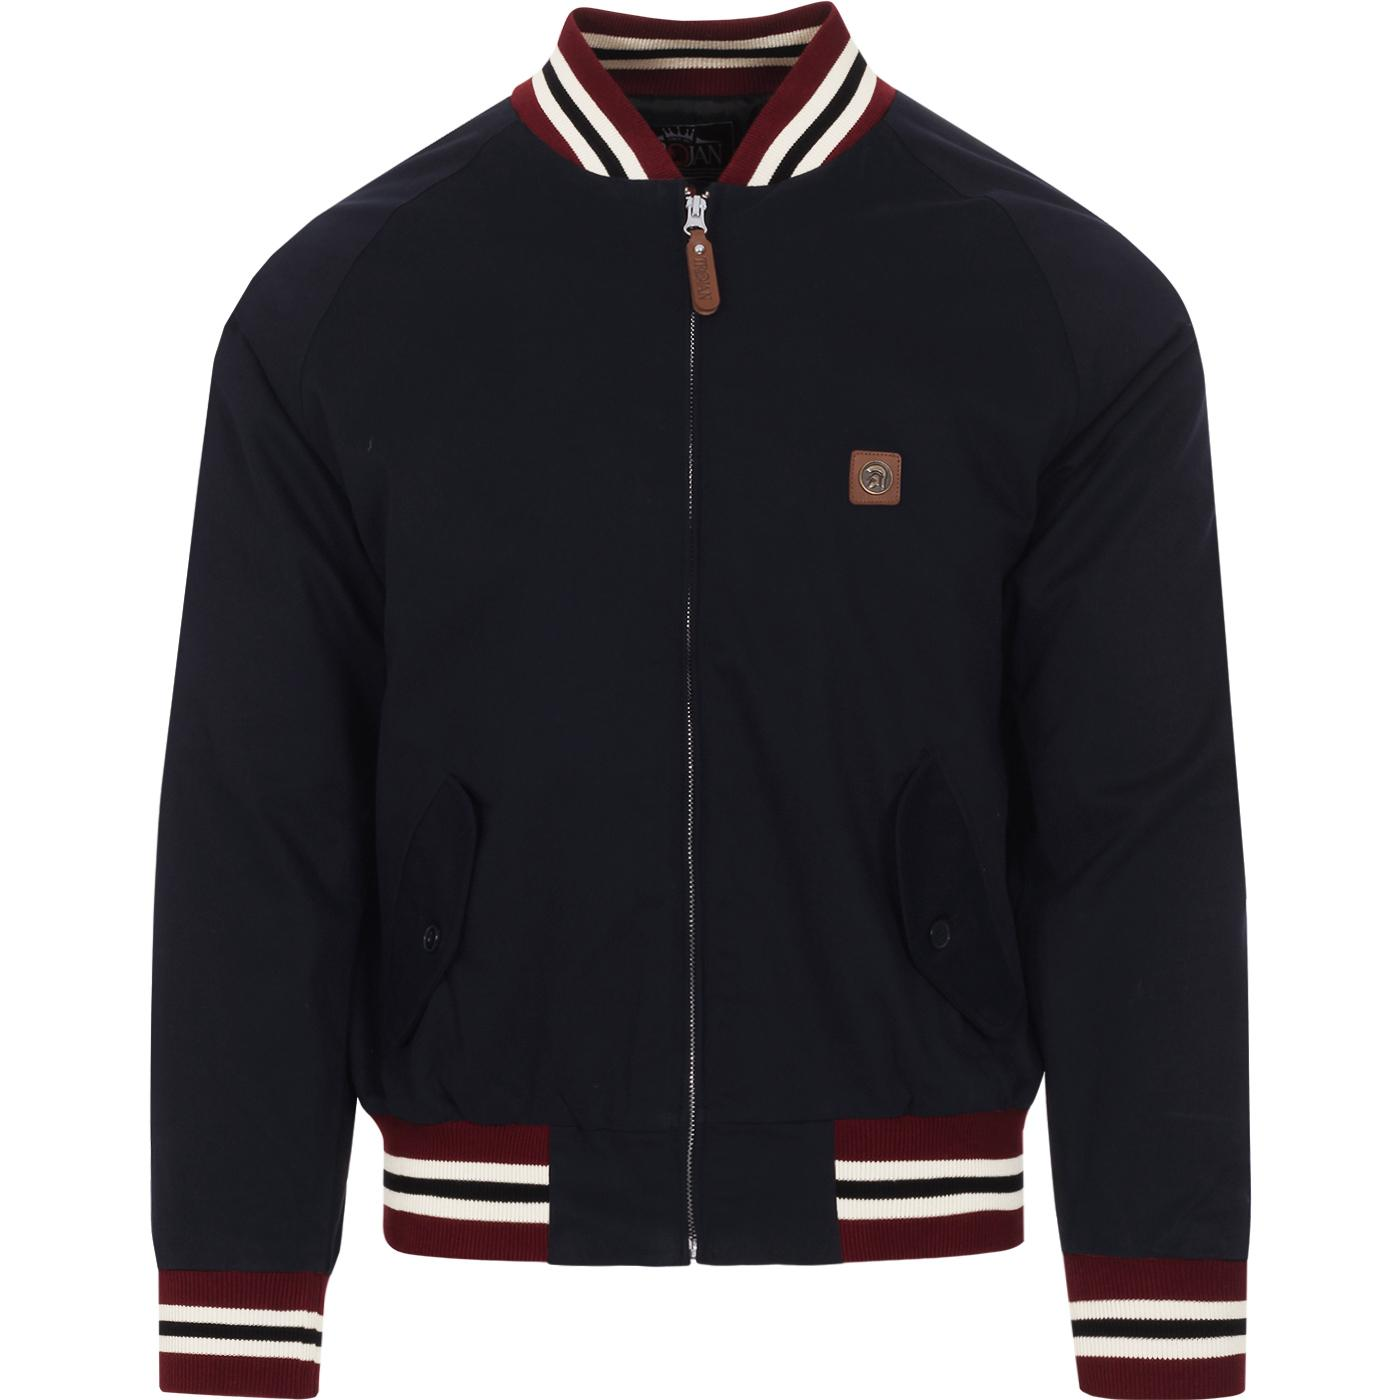 TROJAN RECORDS Classic Mod Monkey Jacket (Navy)